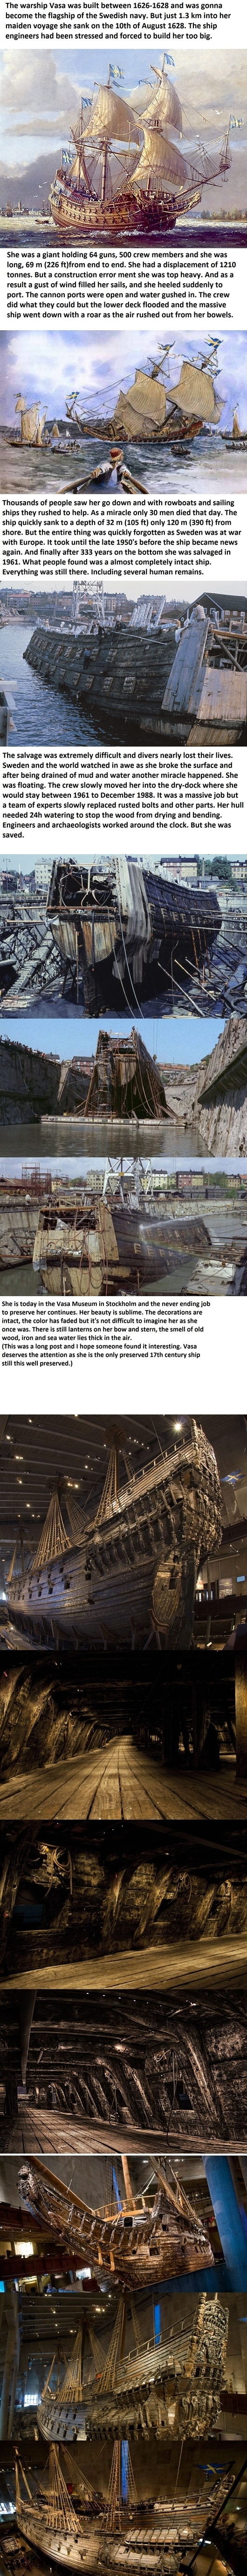 A post for ship history lovers out there